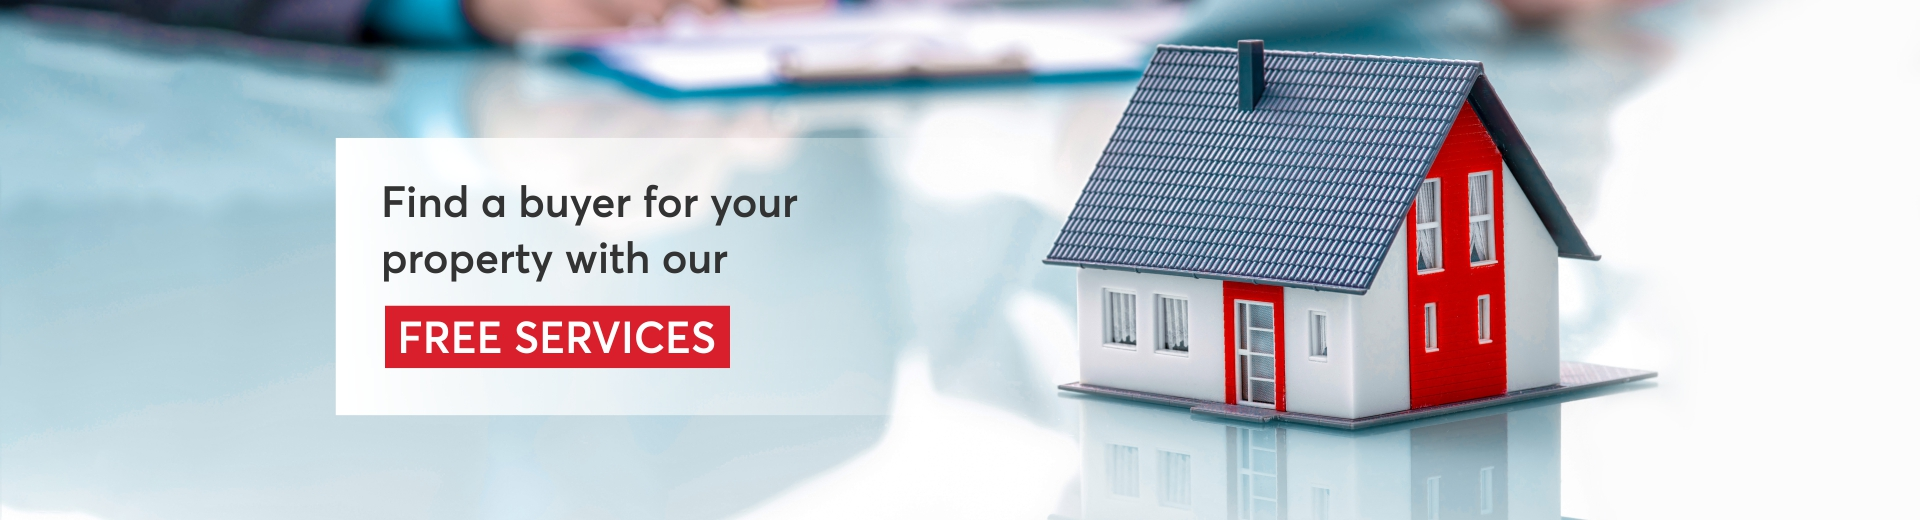 Buy Home | Your new home with Buy Home real estate agency